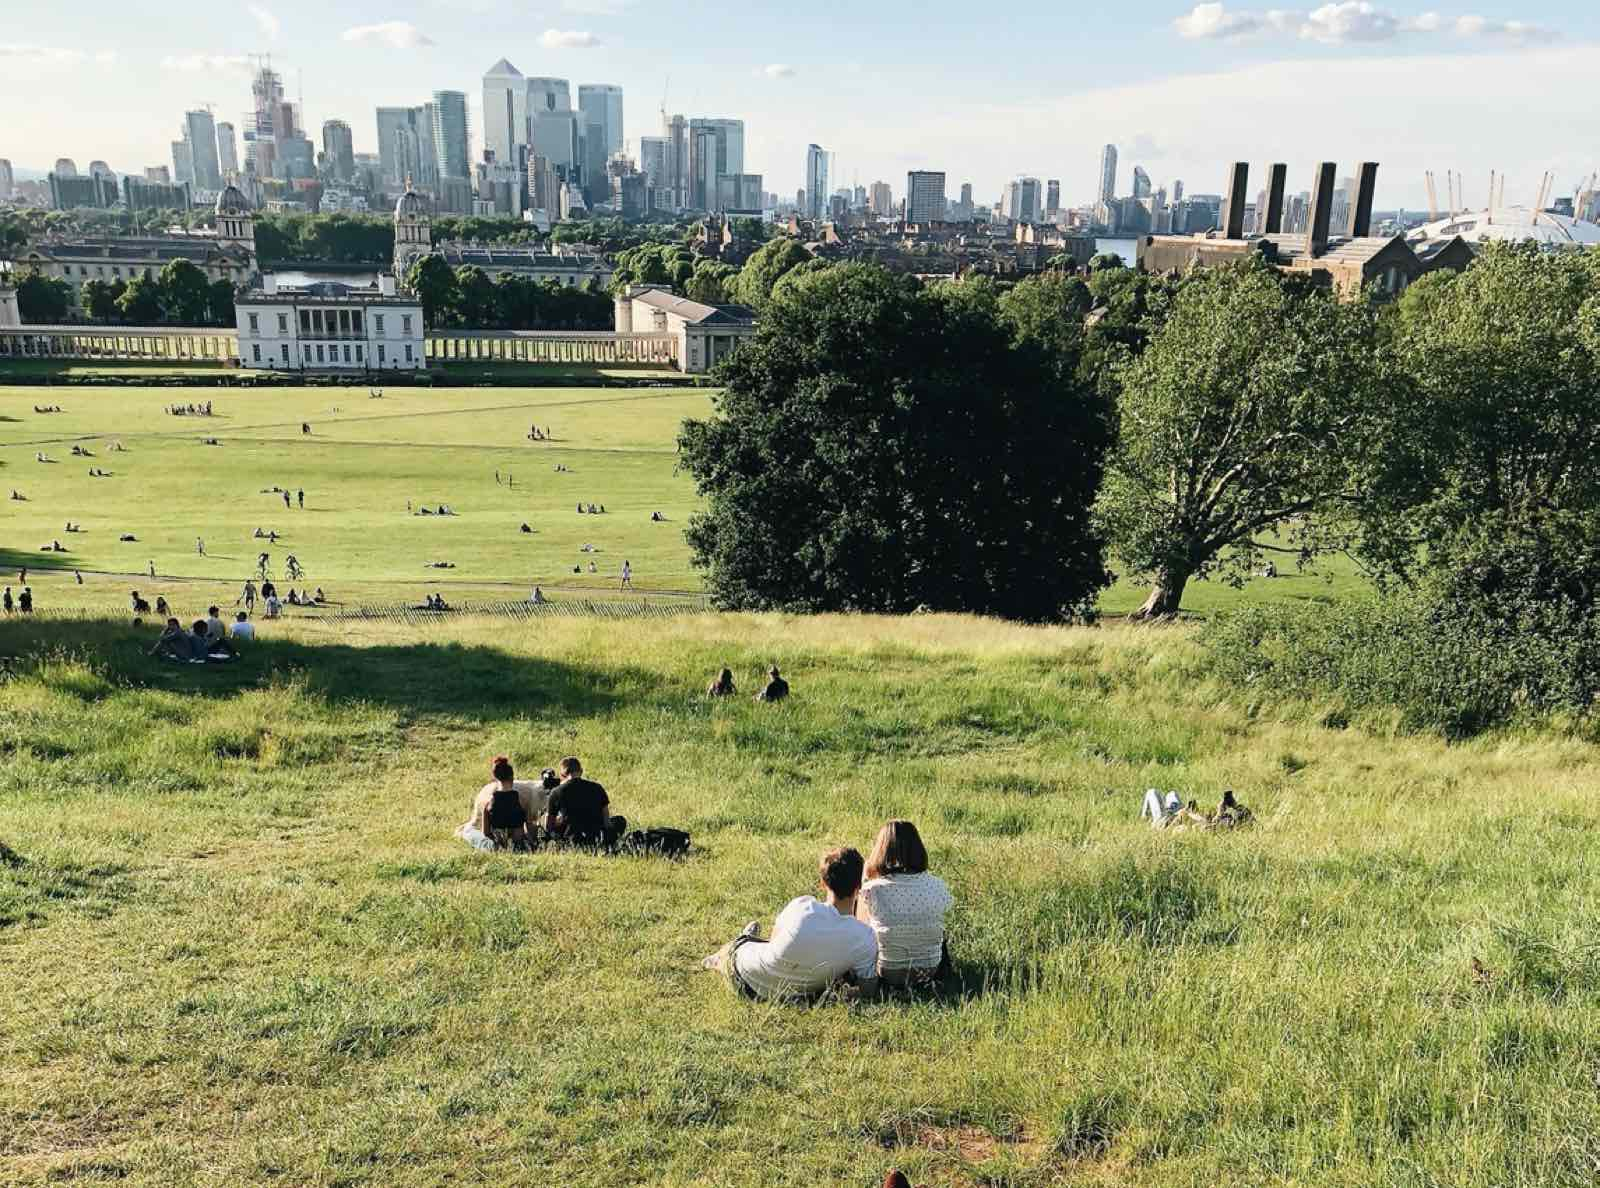 People sitting on the grass in Greenwich Park with a view of City skyscrapers in London.